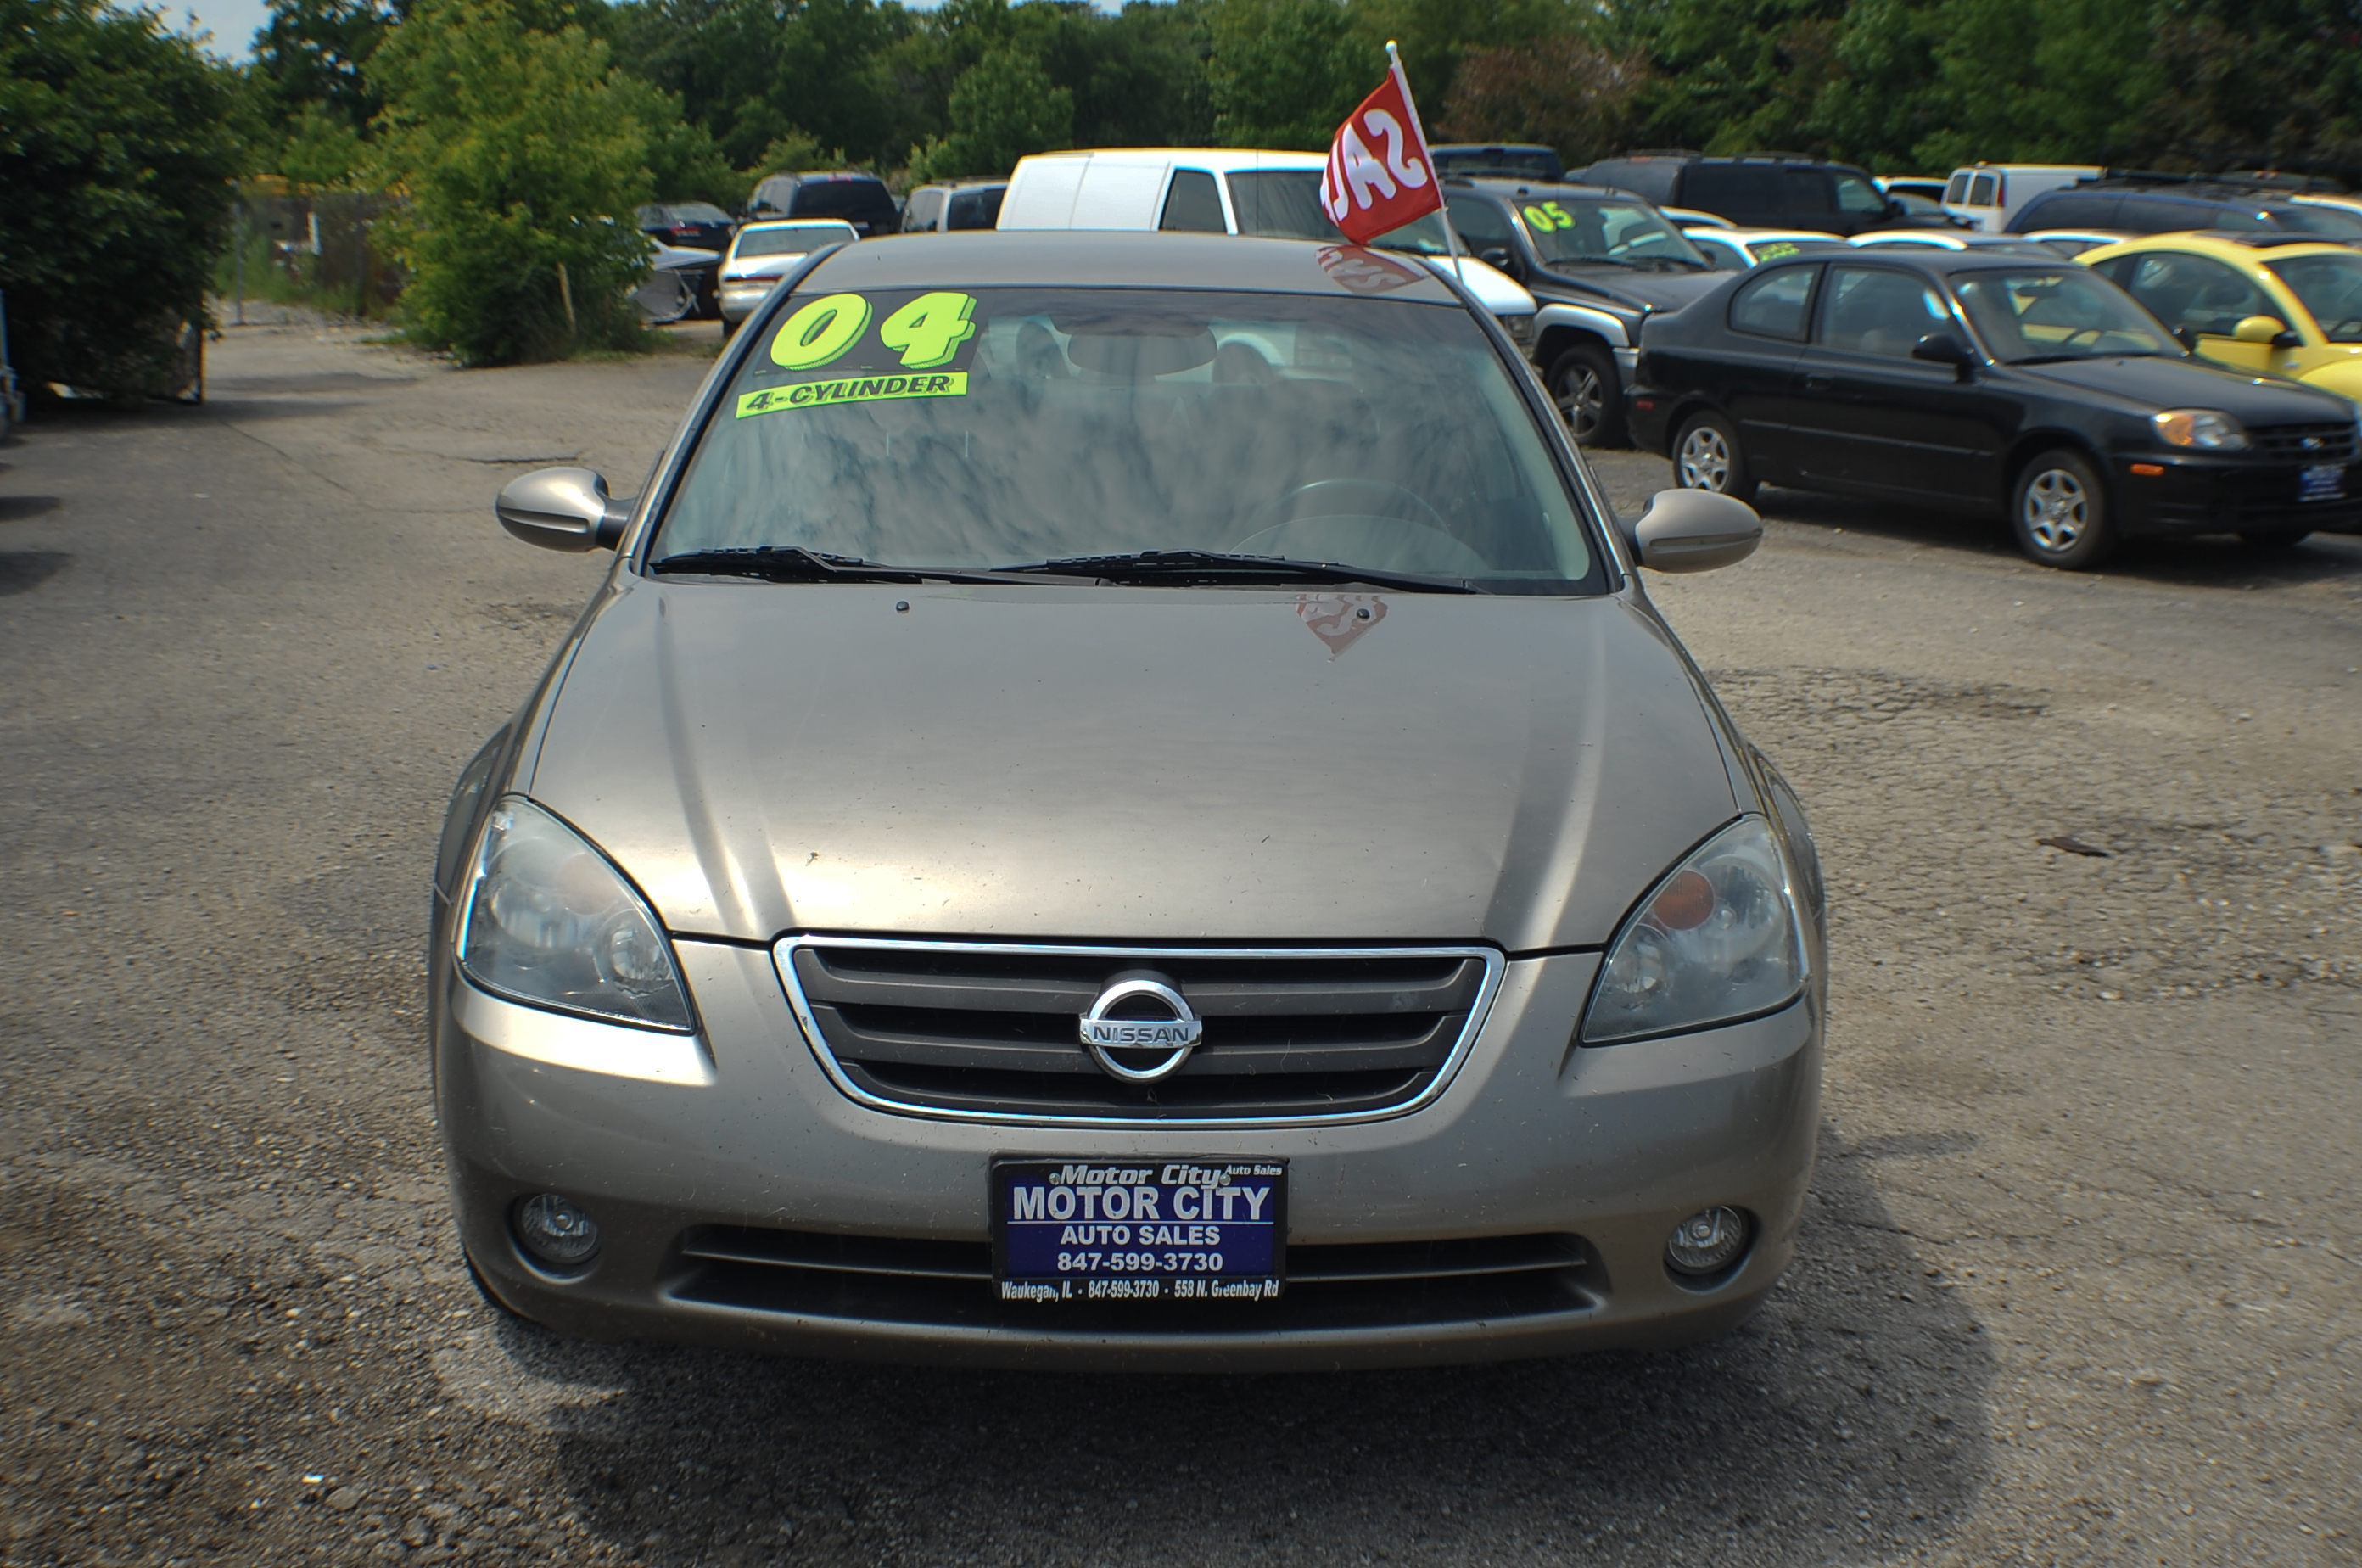 2004 Nissan Altima 2.5S Sand Sedan Used Car Sale Libertyville Beach Park